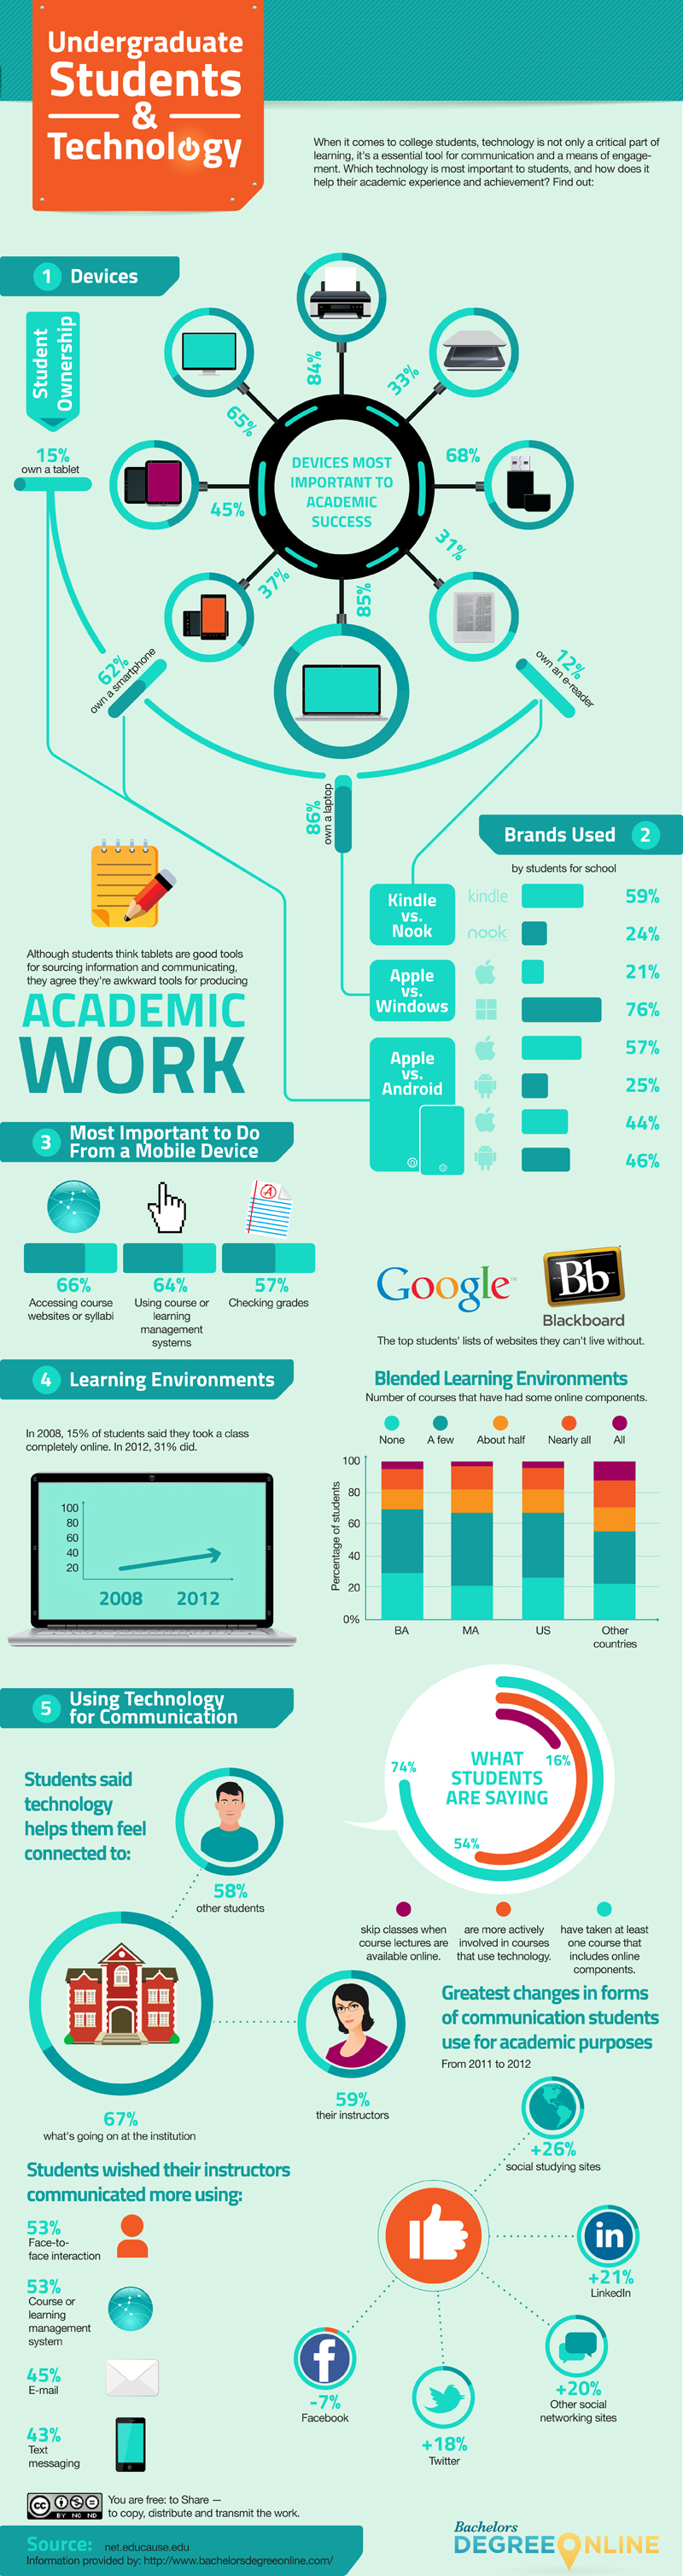 Which Technology Is The Most Important To Students